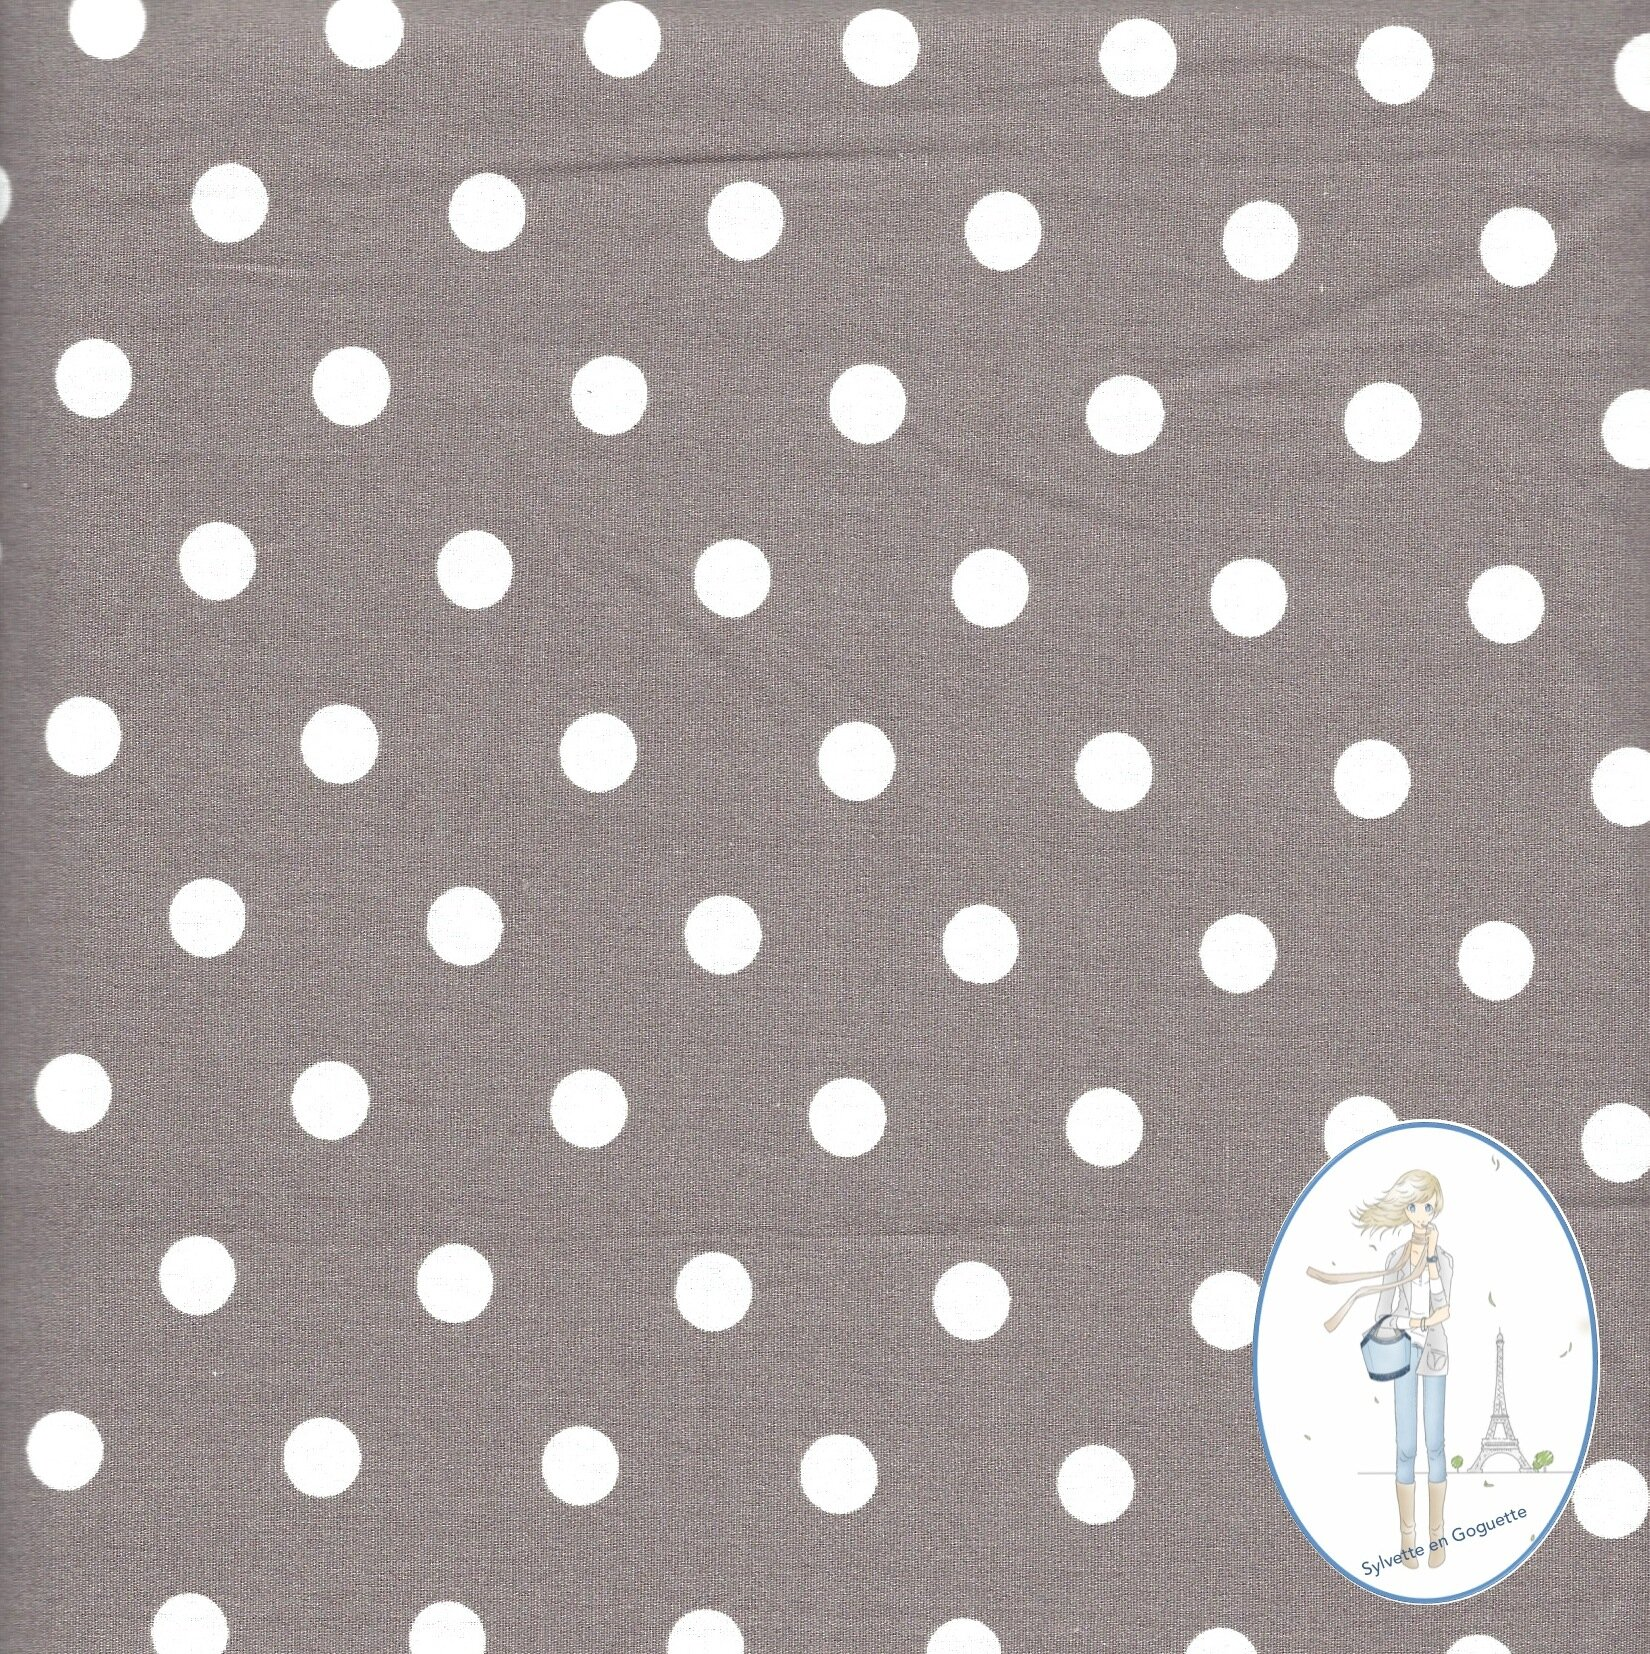 Couture coupon tissu gros pois blancs fond taupe 590 for Couture de tissus